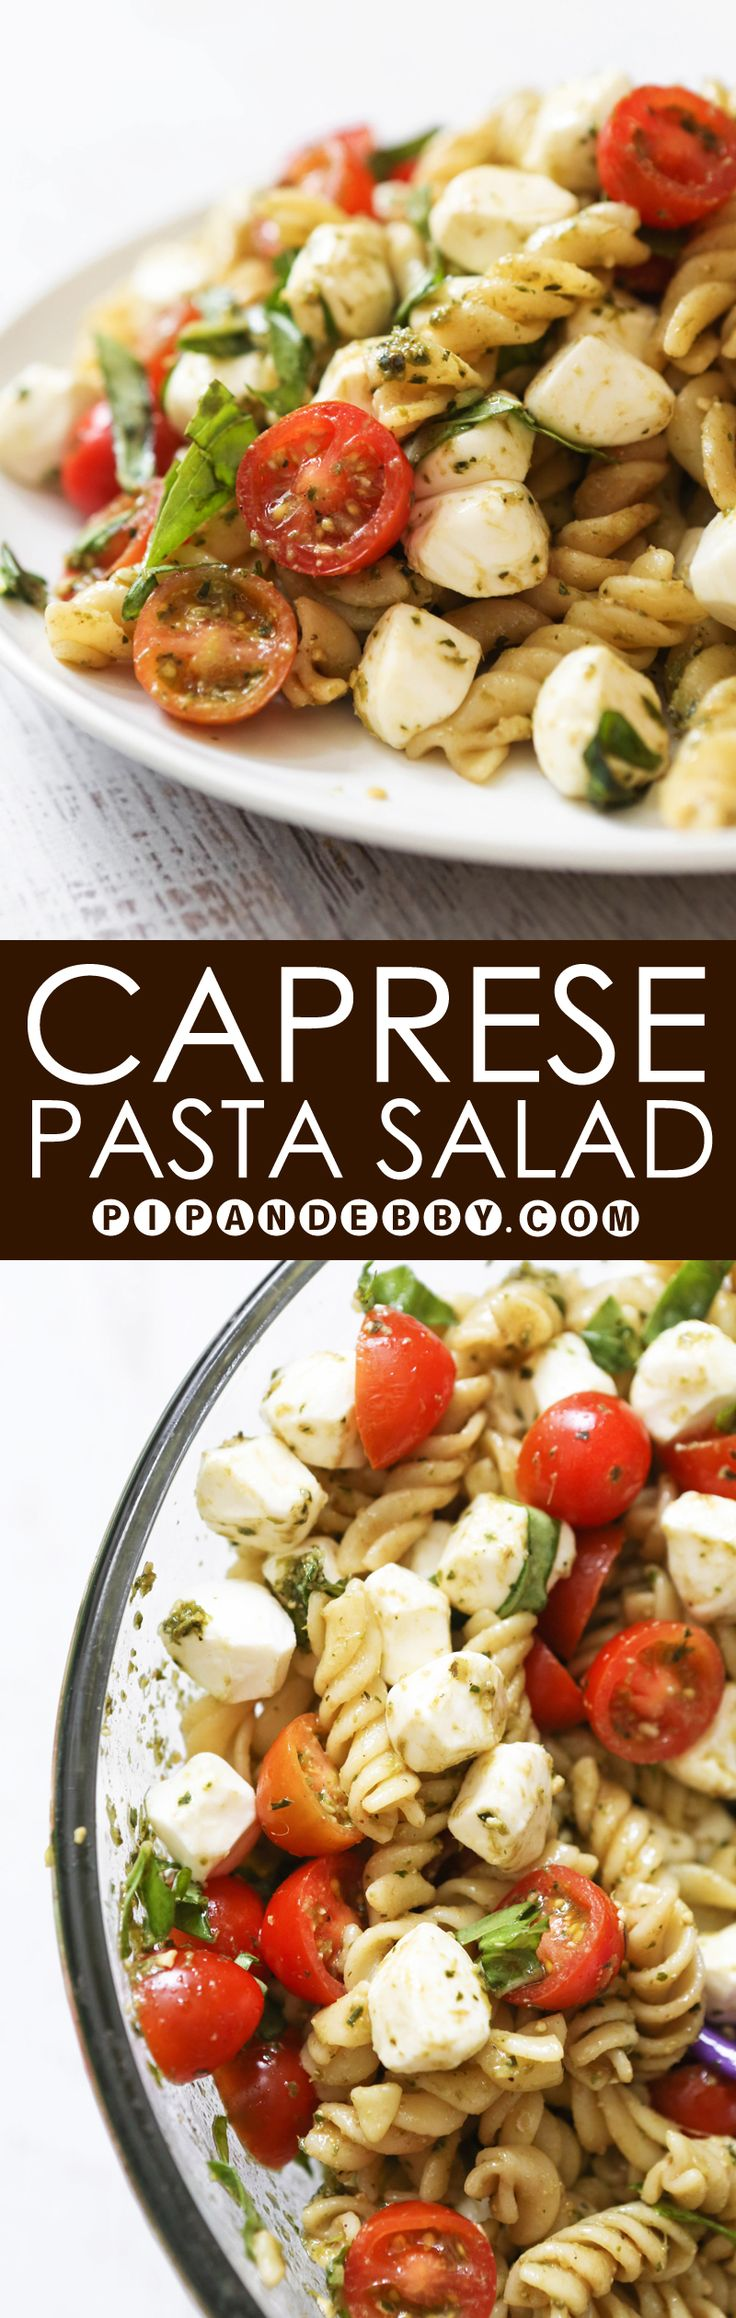 手机壳定制shop online for bags Caprese Pasta Salad  This perfect combination of ingredients is great as an appetizer or a salad